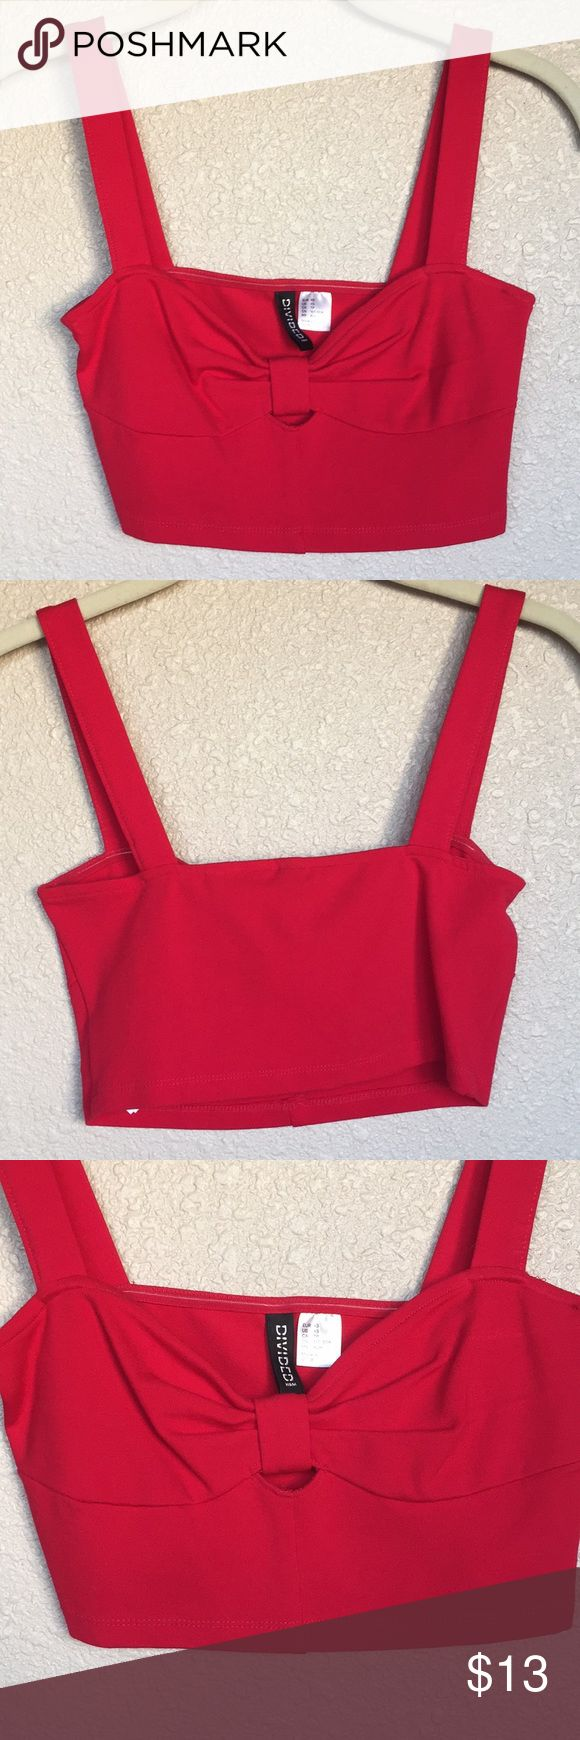 Red bow crop top Adorable 50s pinup inspired red crop top. Perfect condition. H&M Tops Crop Tops